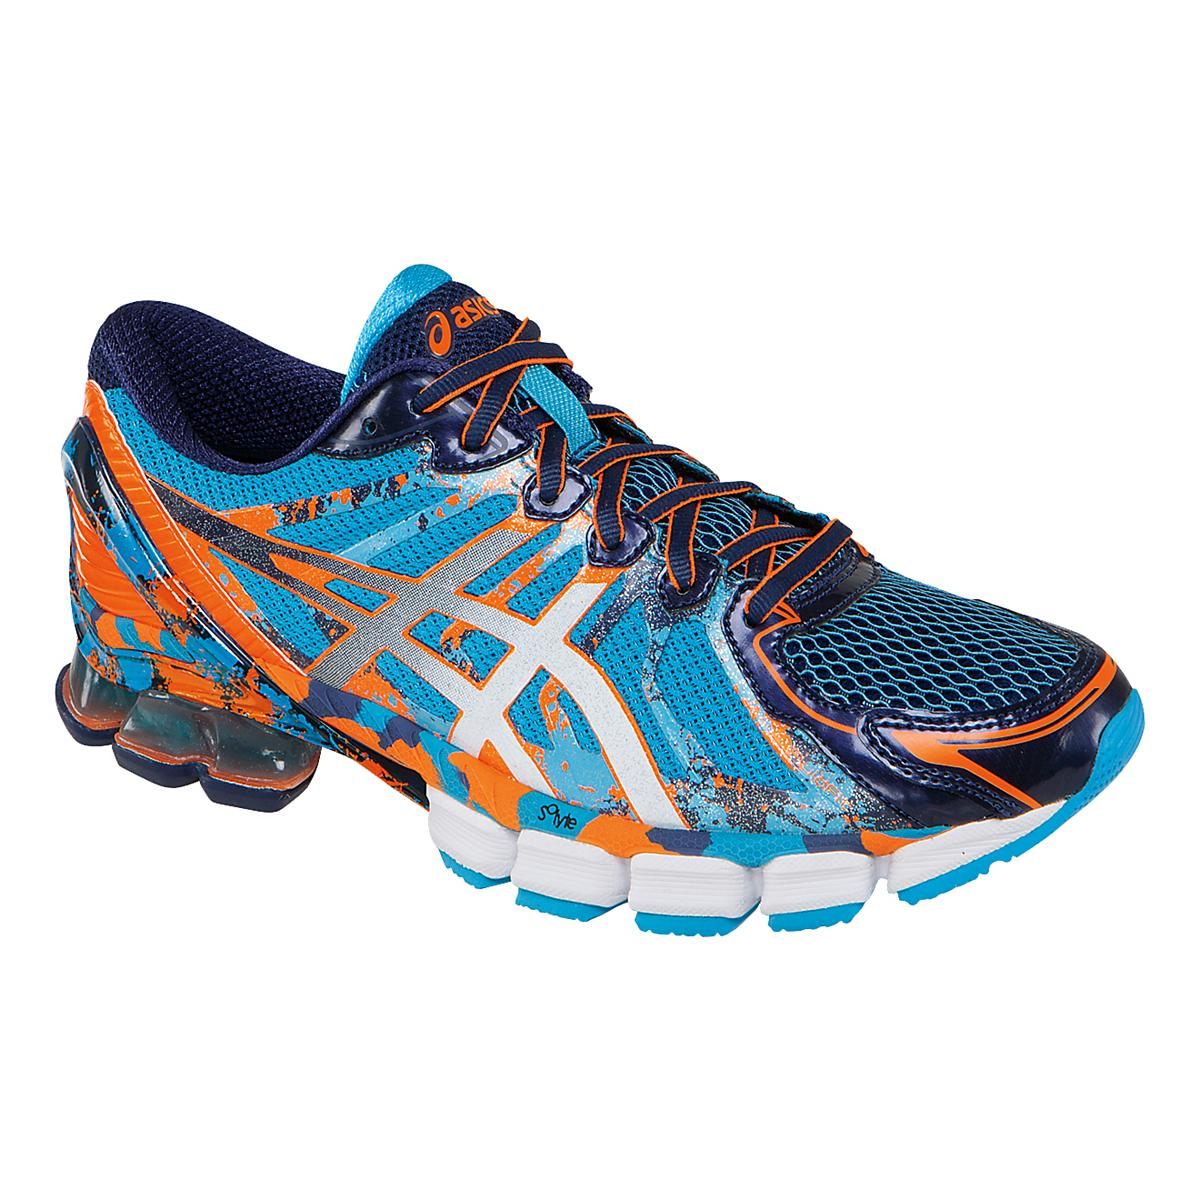 f70a416828f7 Mens ASICS GEL-Sendai 2 Running Shoe at Road Runner Sports